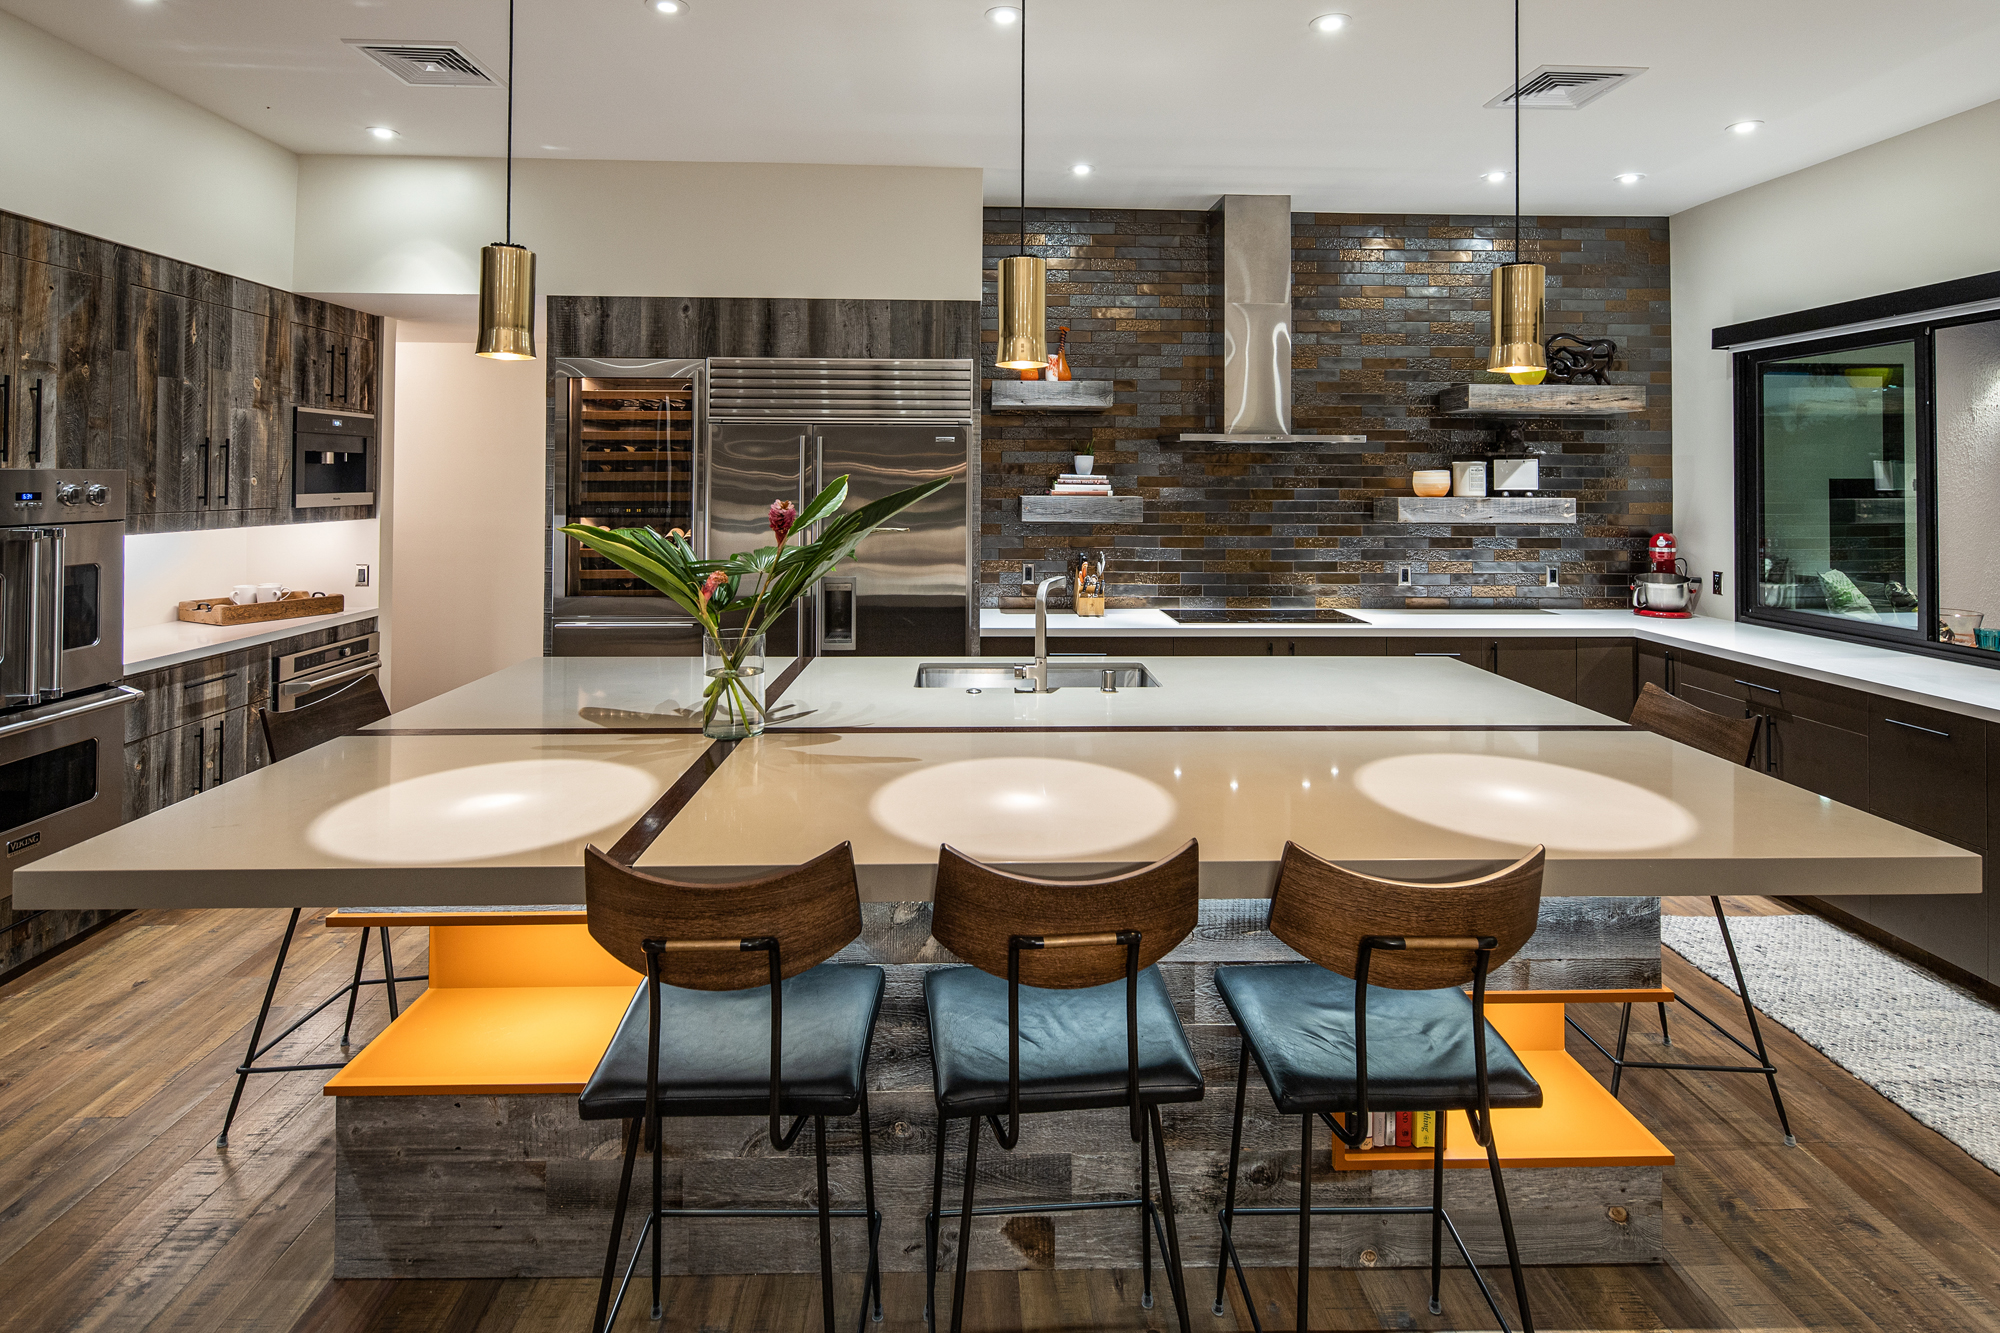 A luxurious kitchen with barstools, island with sink, stovetop with hood, and large fridge.